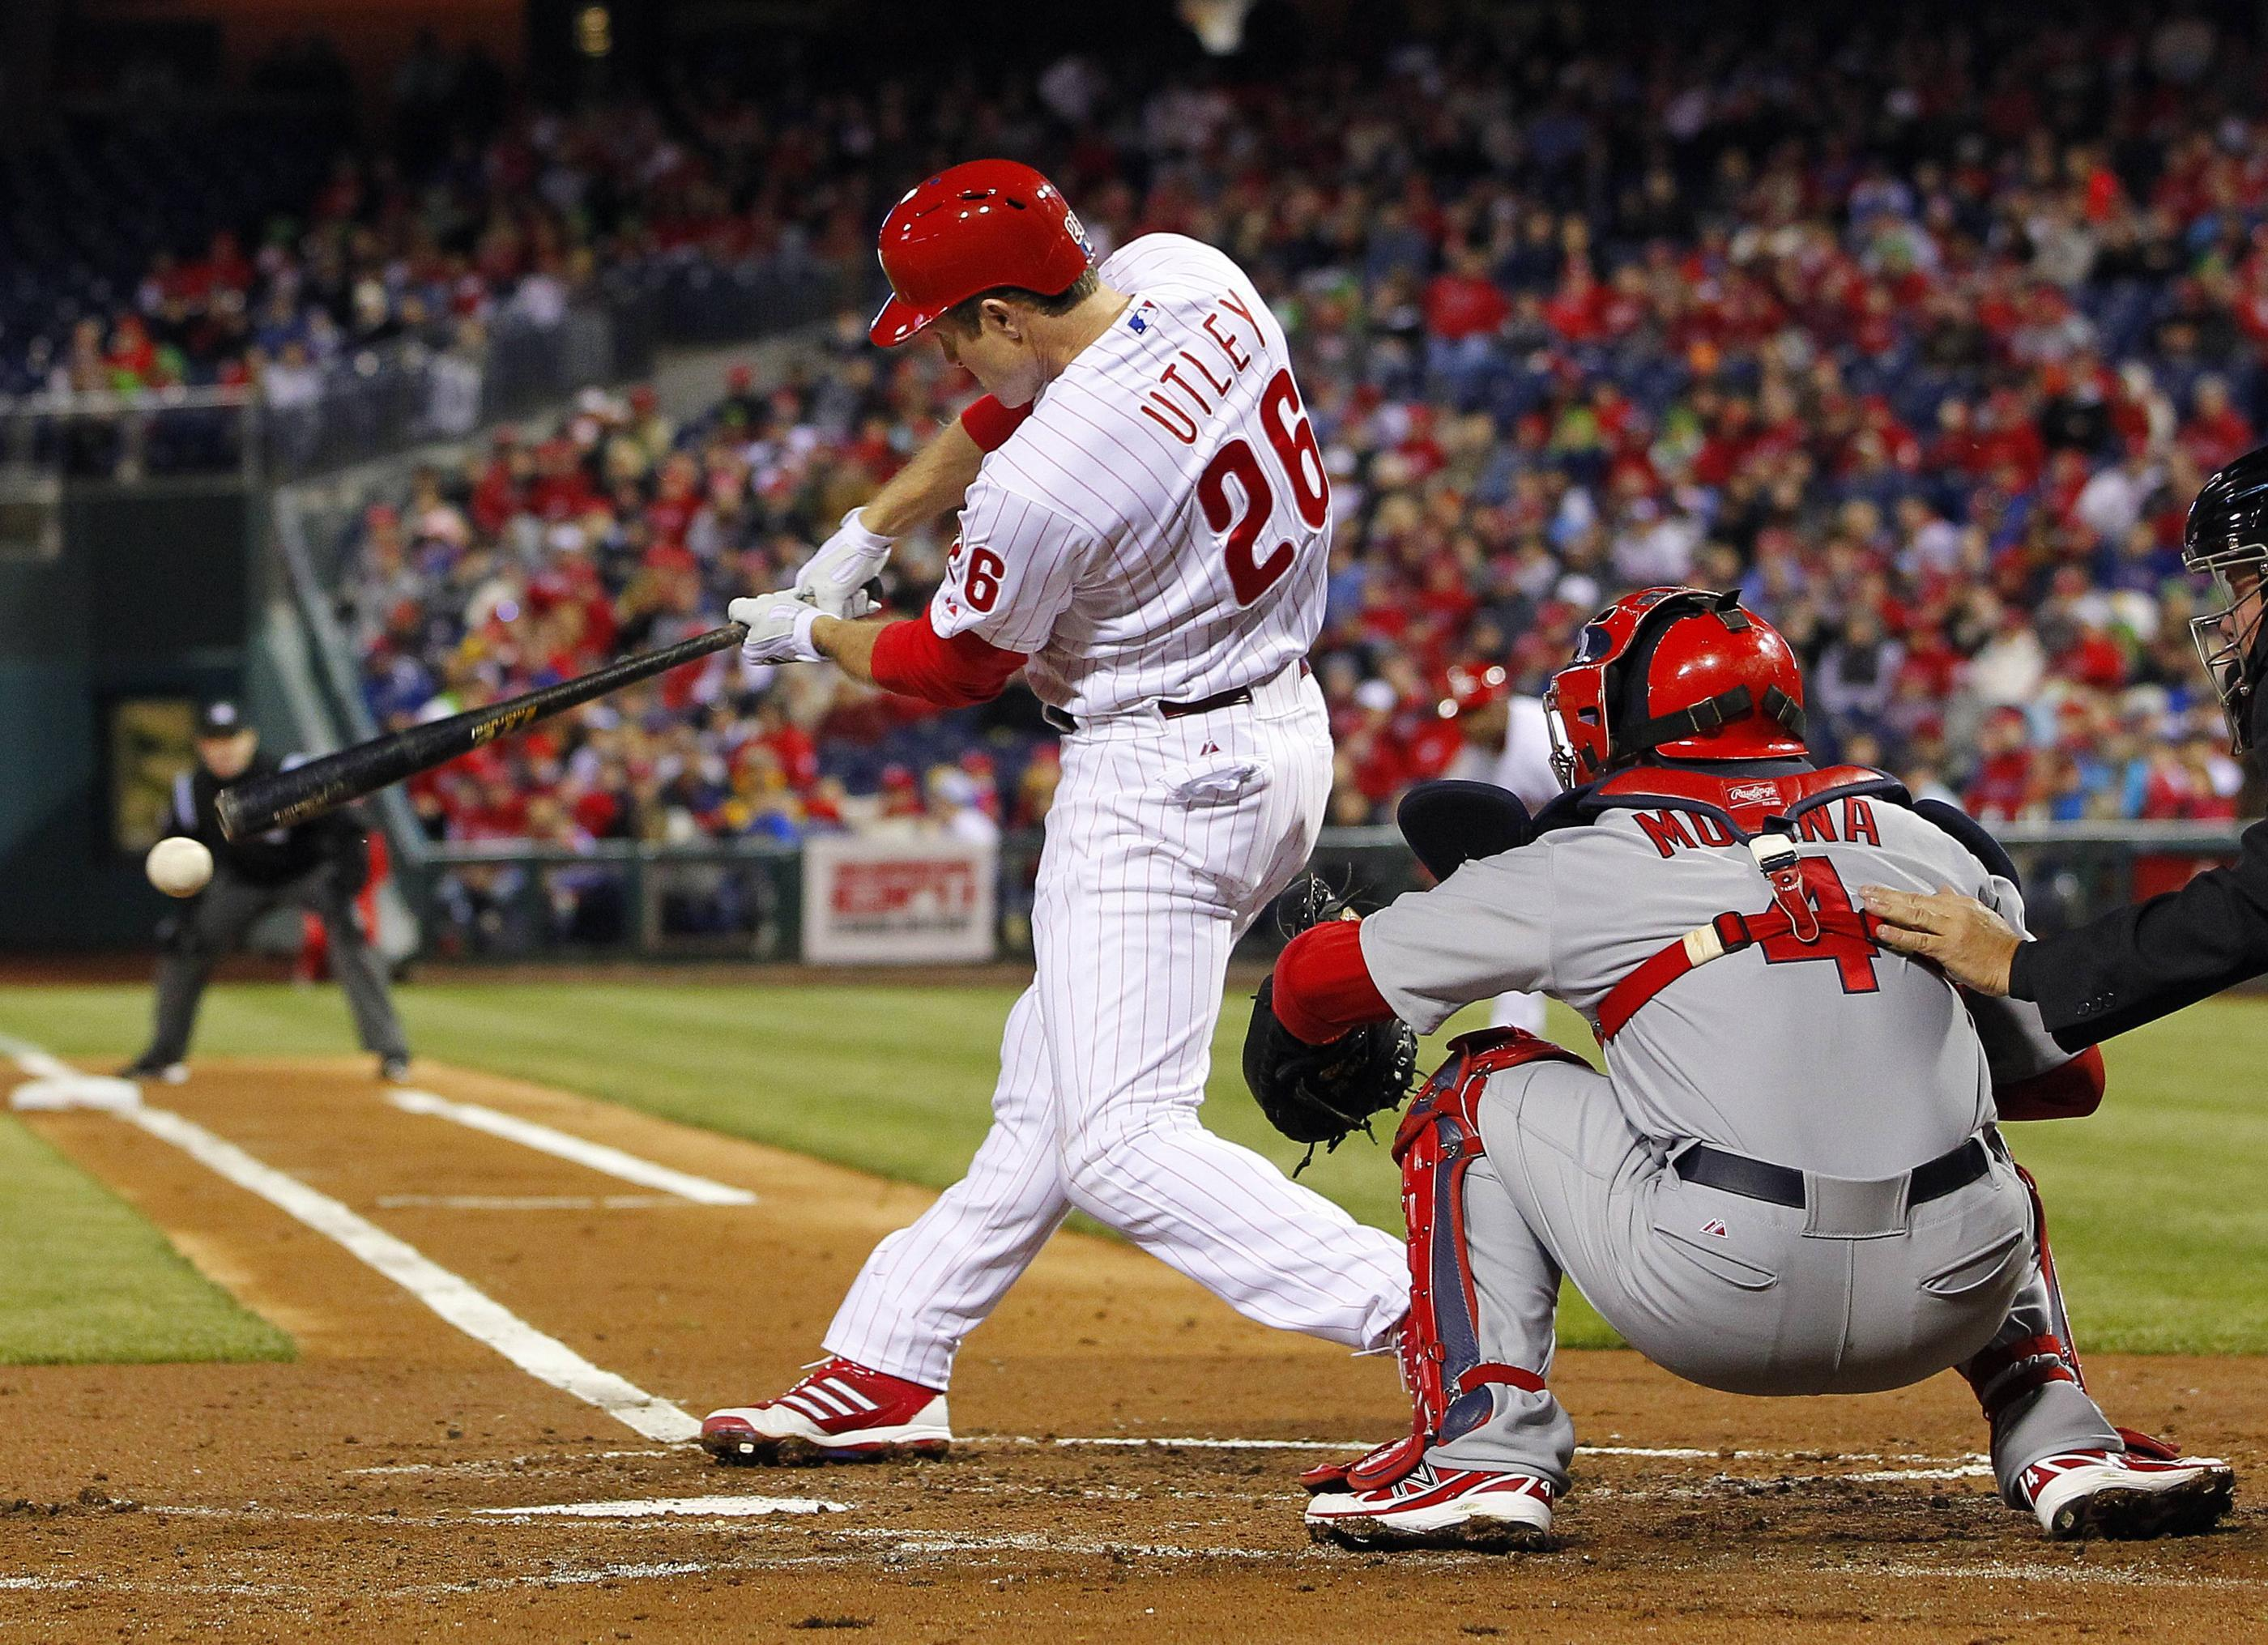 Chase Utley of the Phillies MLB photo